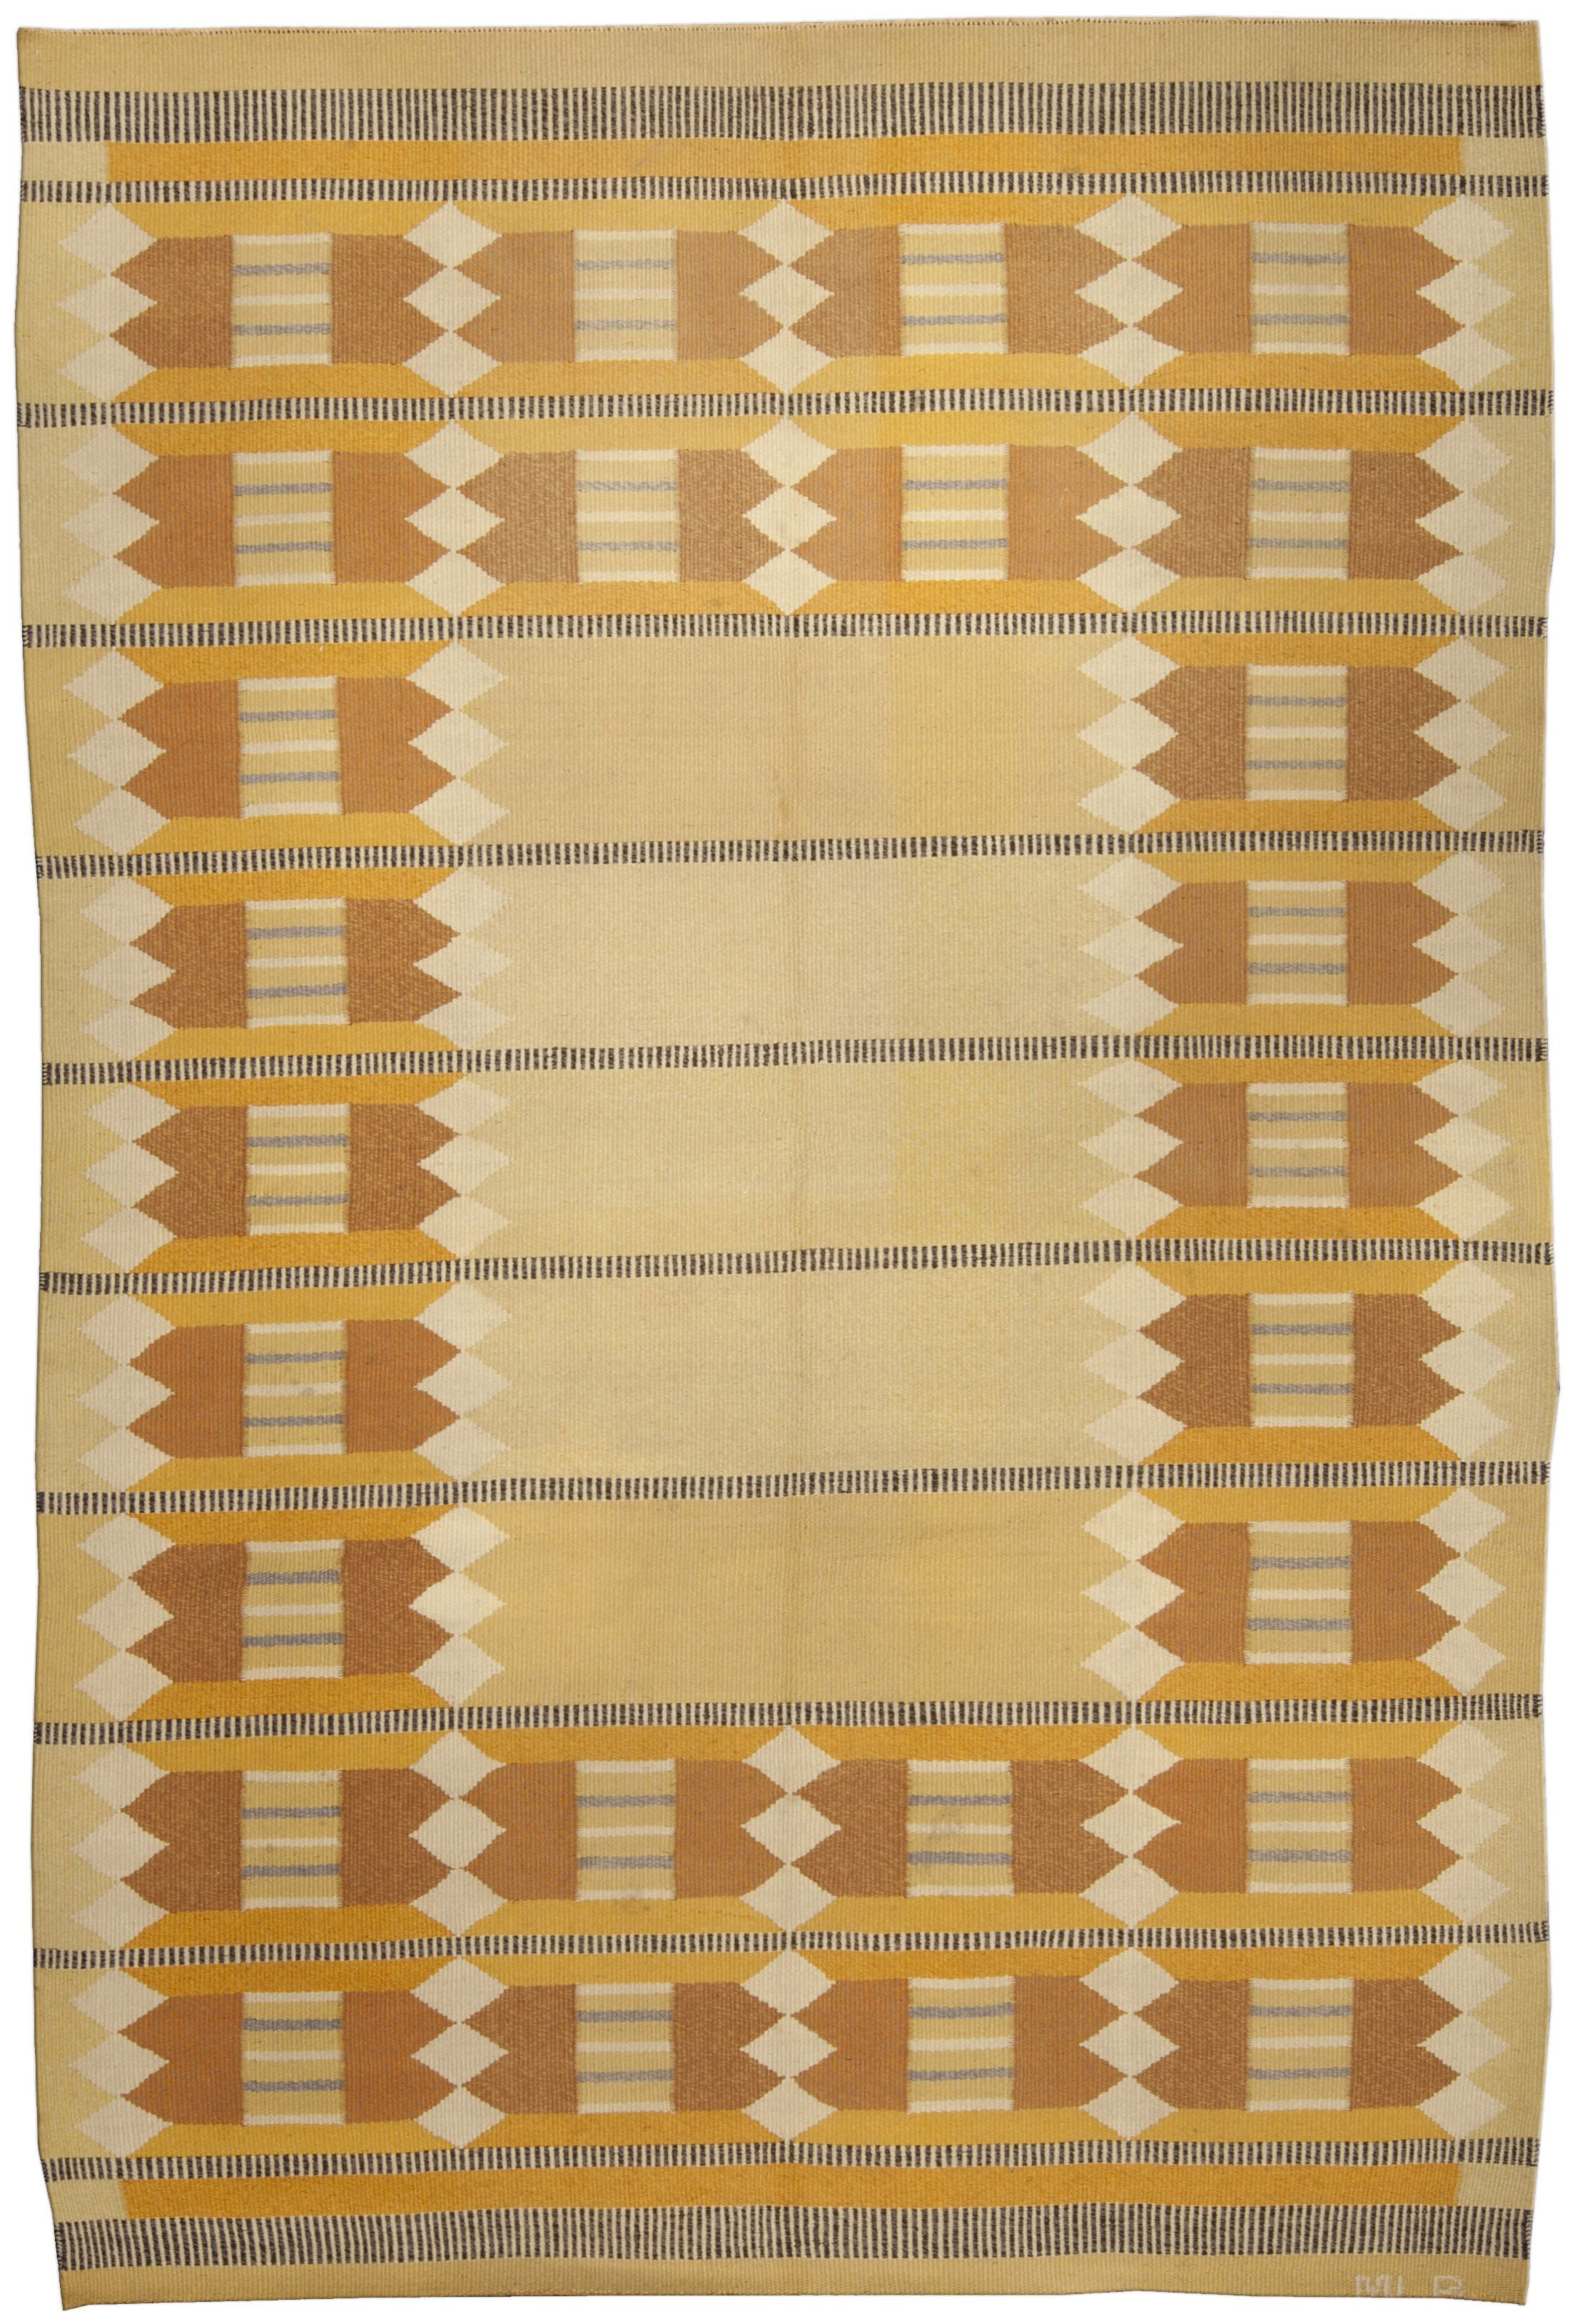 A Swedish Rug Bb4981 A Swedish Flat Weave Rug With A Modern Geometric And Linear Design Composed With Warm Shades Of Yell Scandinavian Rug Rugs Vintage Rugs